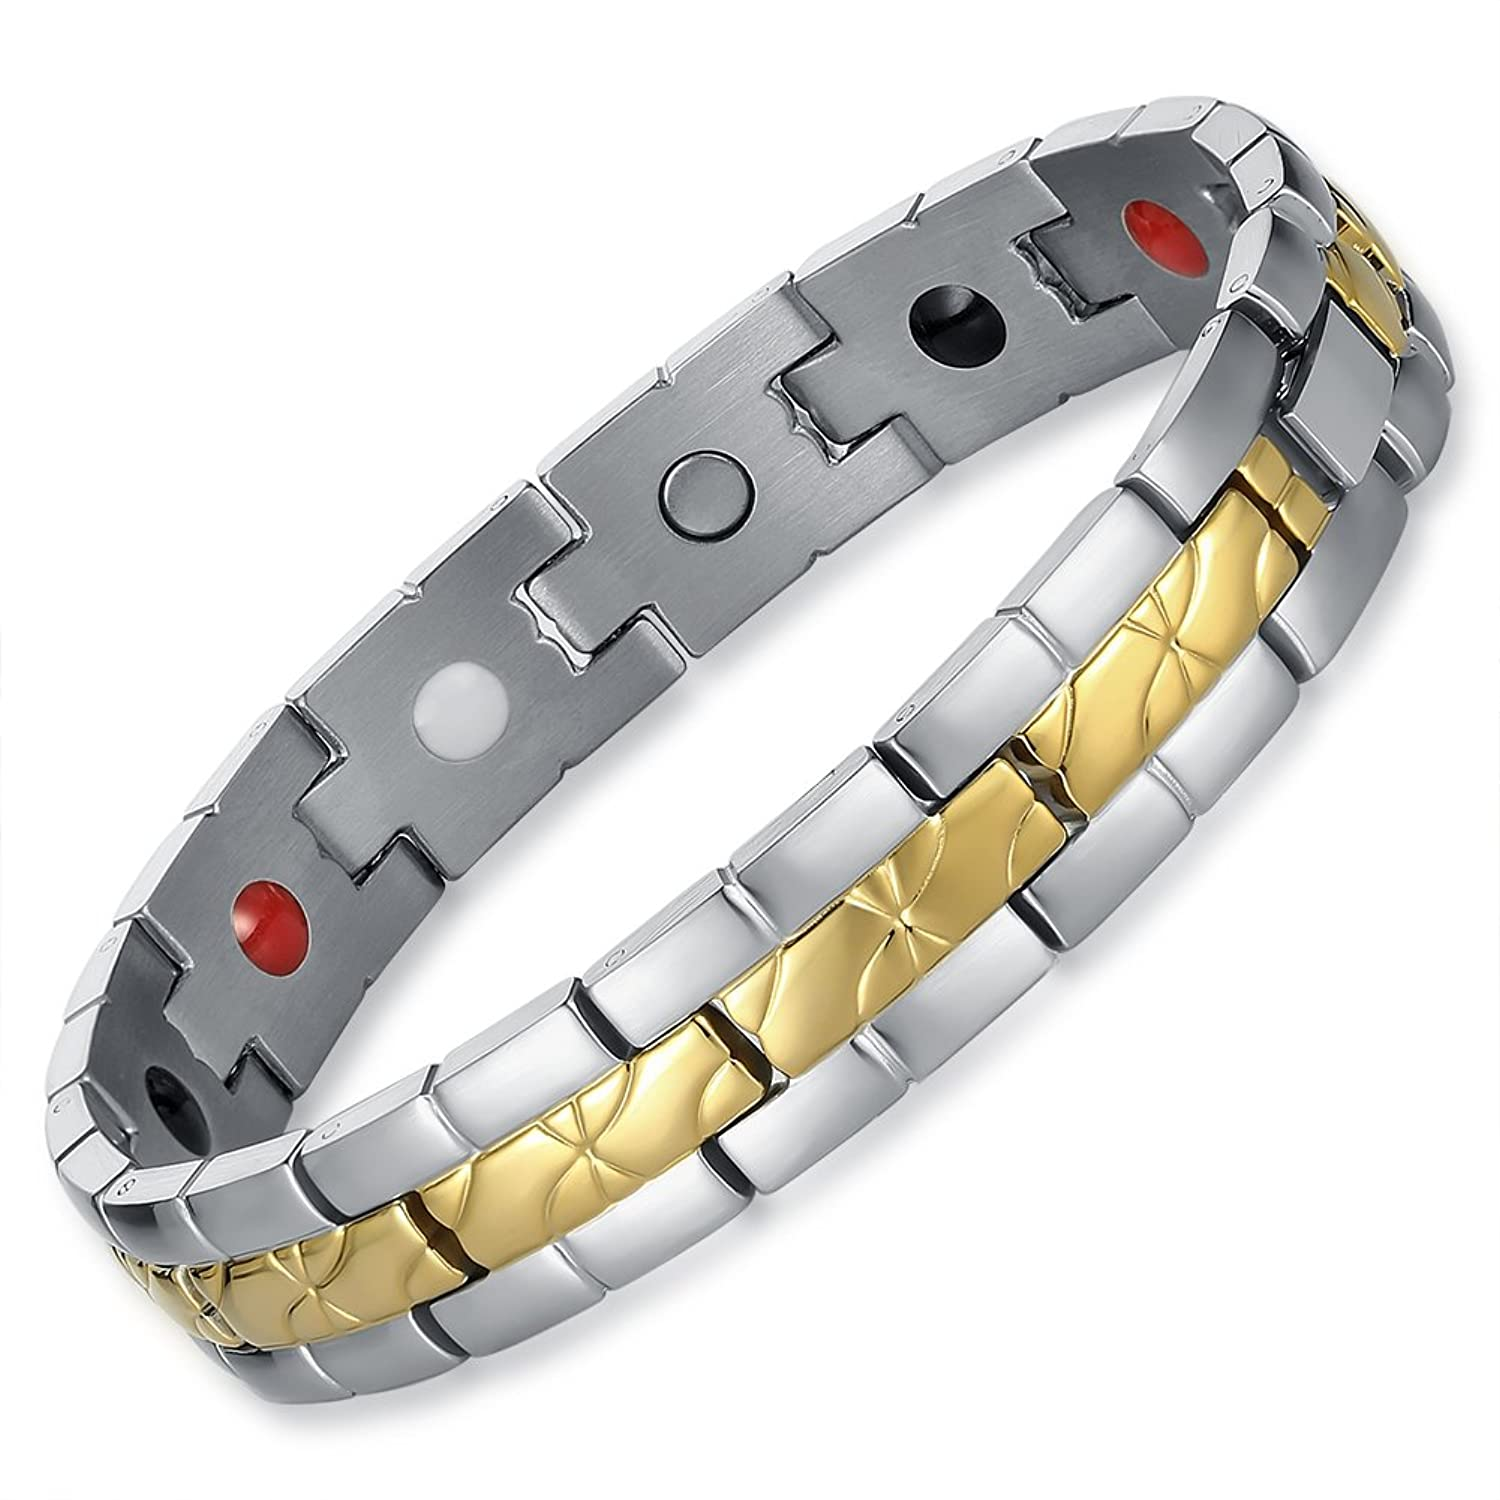 Magnetic Therapy Bracelet Stainless Steel Link With Magnet for Men Arthritis and Carpal Tunnel Pain Relief 8.9 Inch